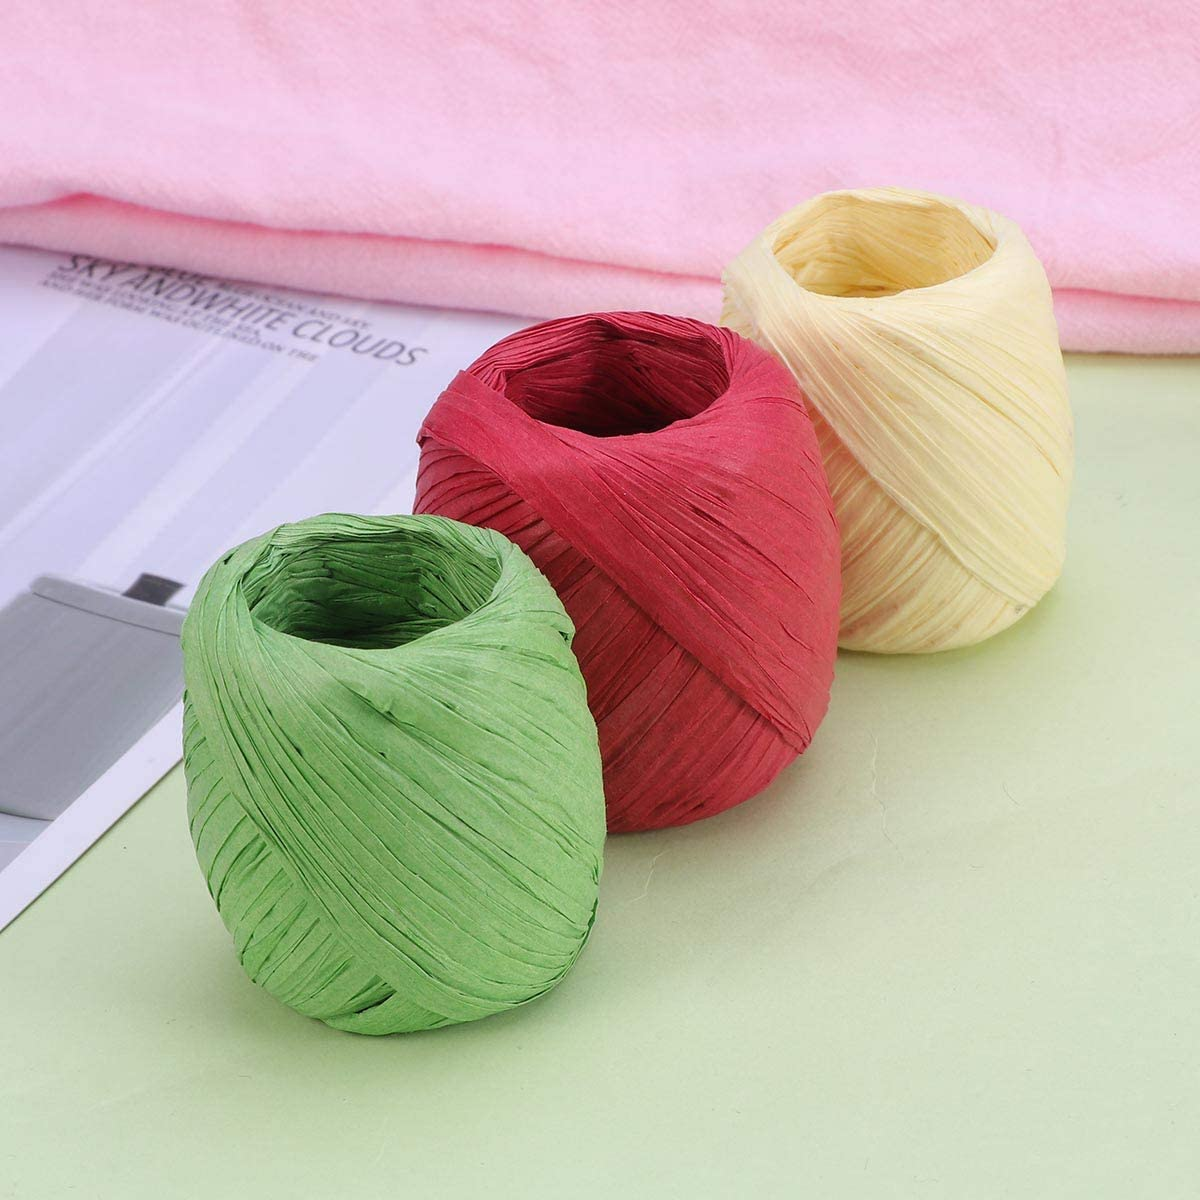 Army Green, Light Yellow, Red ULTNICE Raffia Ribbon Straw String Packing Tape for DIY Crafts Gift Packaging 3 Rolls 20M